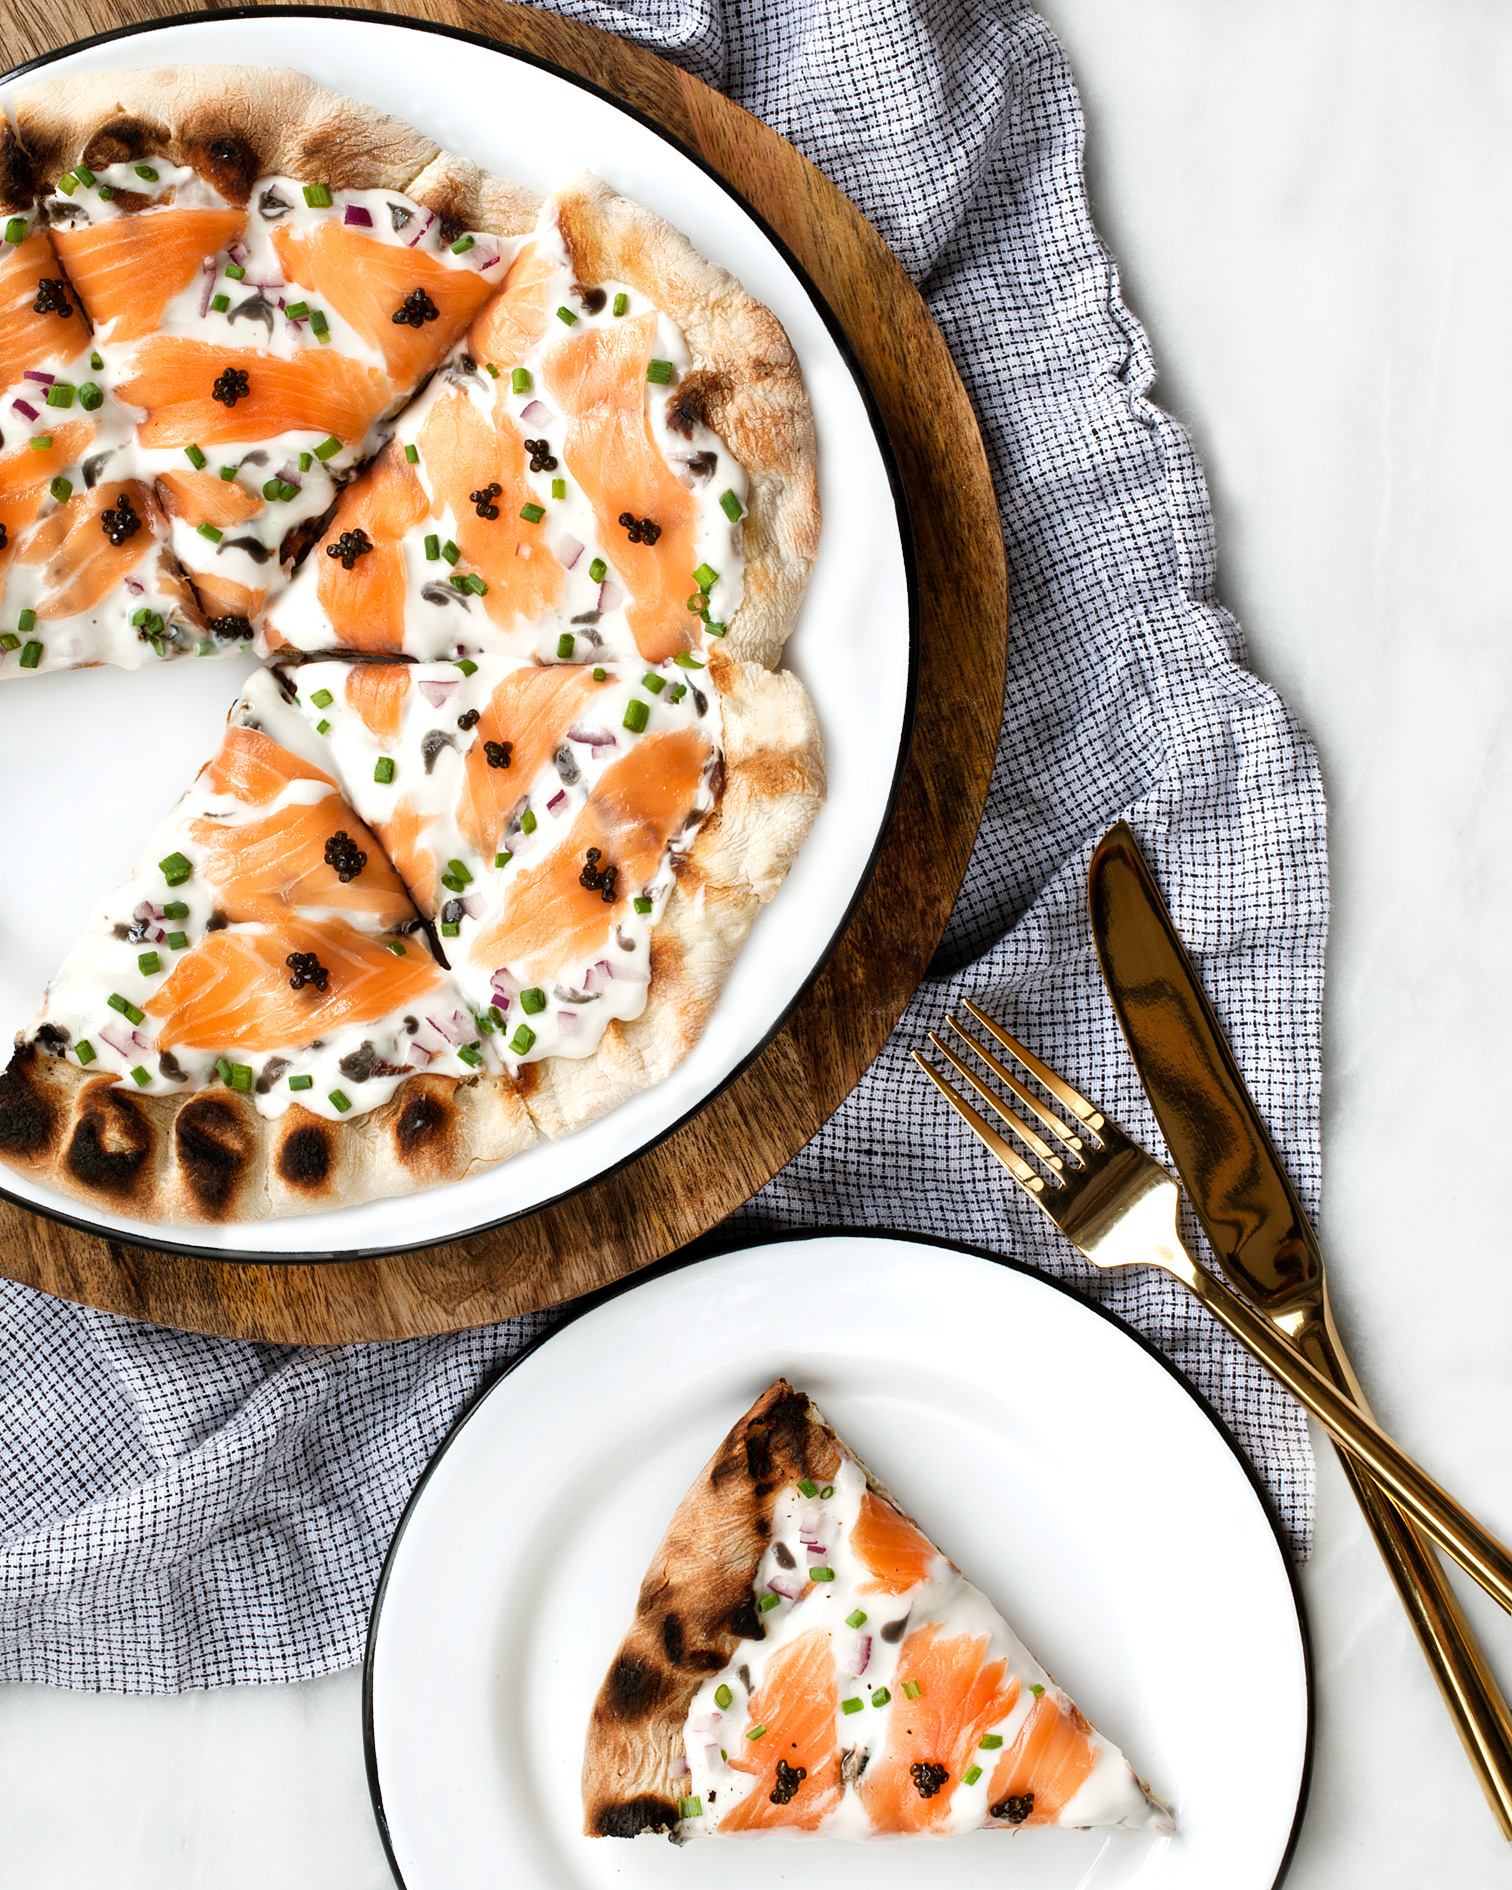 @lastingredient's cover photo for 'Grilled Pizza with Caviar and Smoked Salmon | Last Ingredient'